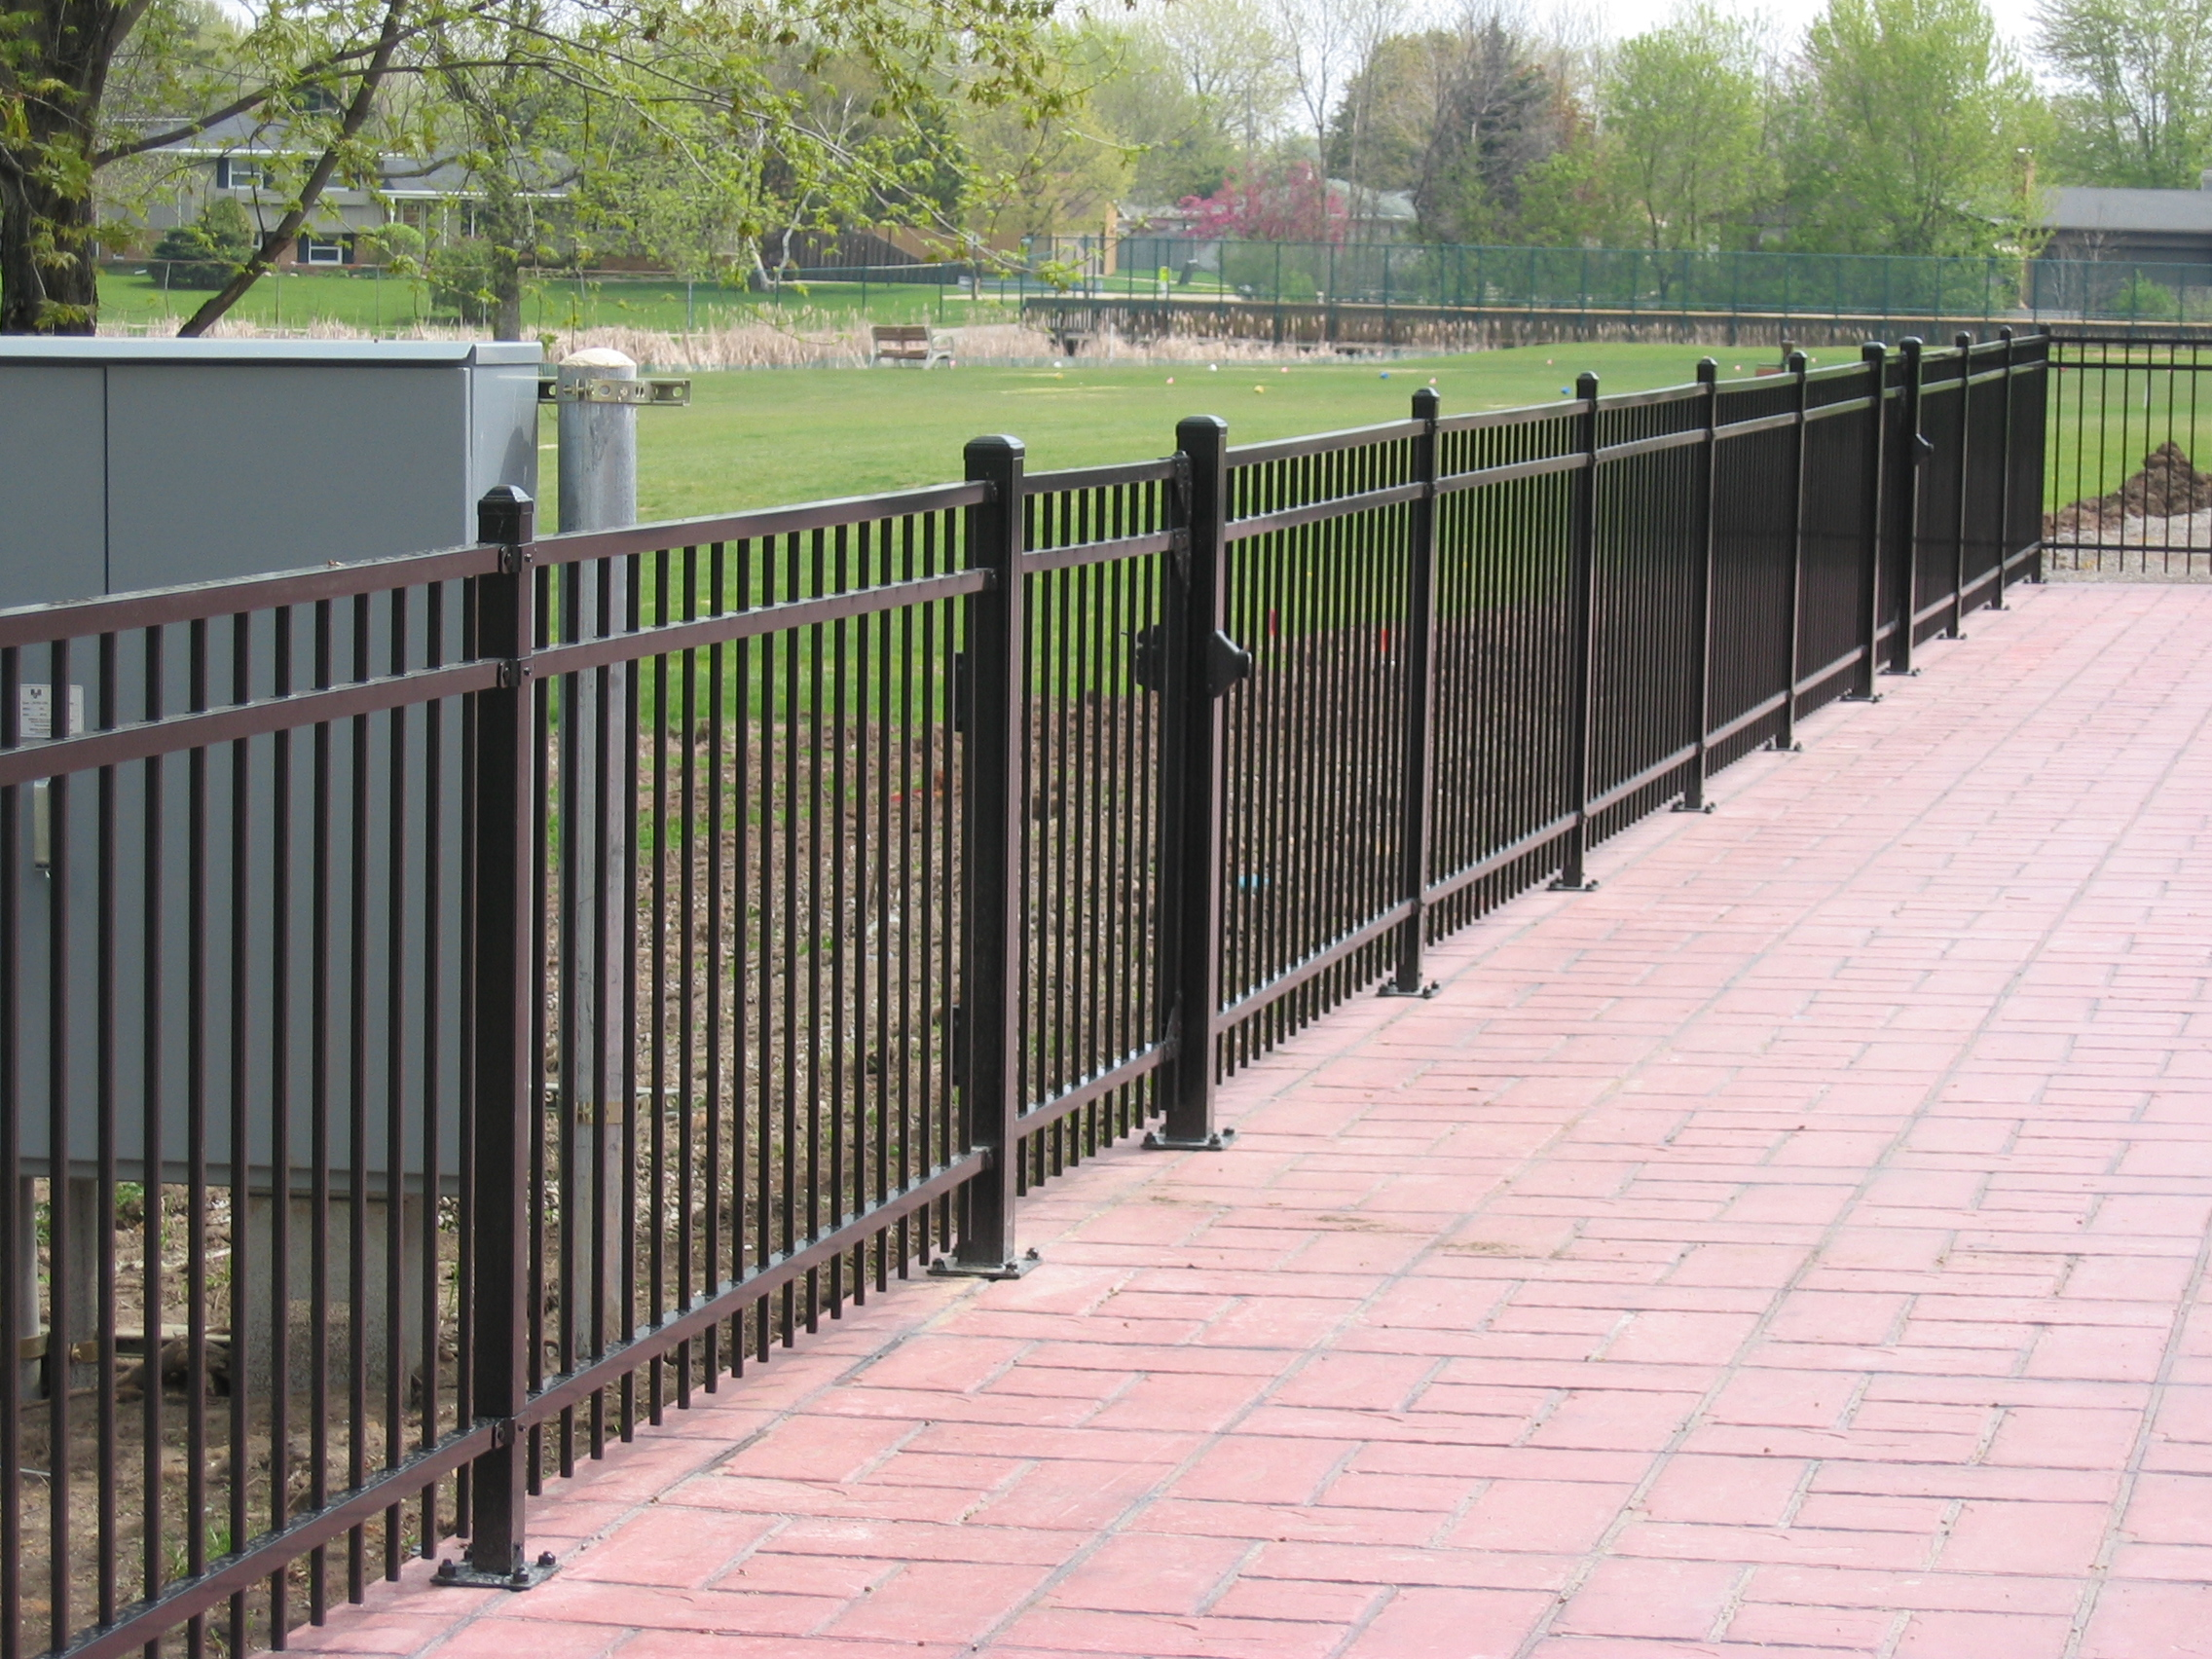 CommercialFence_SecurityFence.JPG